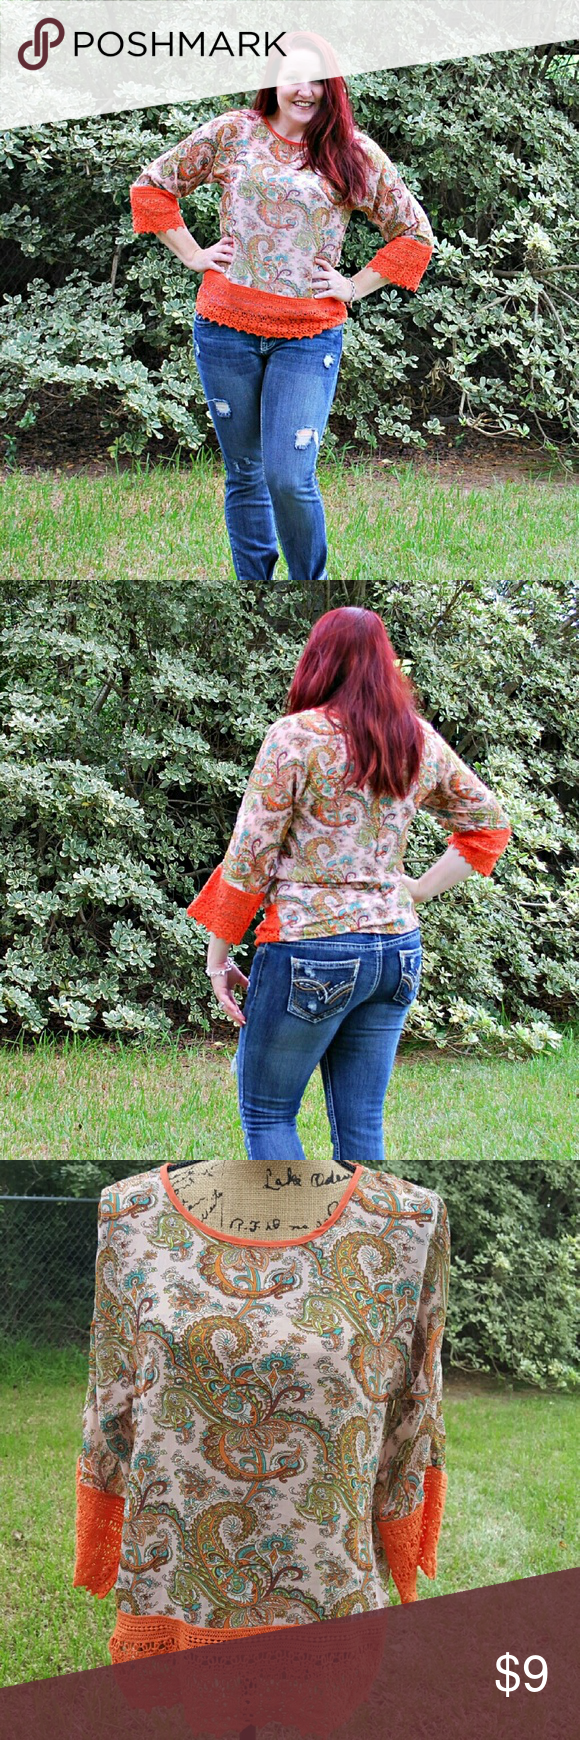 "Umgee Orange Paisley Semi Sheer Boho Blouse S Umgee brand orange paisley sheer blouse. Crochet lace edges at hemline and sleeves. Beautiful blouse. Excellent condition. Tagged size small. Fits oversized.  Measurements : Length 25"" 19"" across front laying flat  #ravenkittystyle #umgee #orange #paisley #fall #fallfashion #sheer #layer #crochet #crochethem #crochetsleeves #small umgee Tops Blouses"